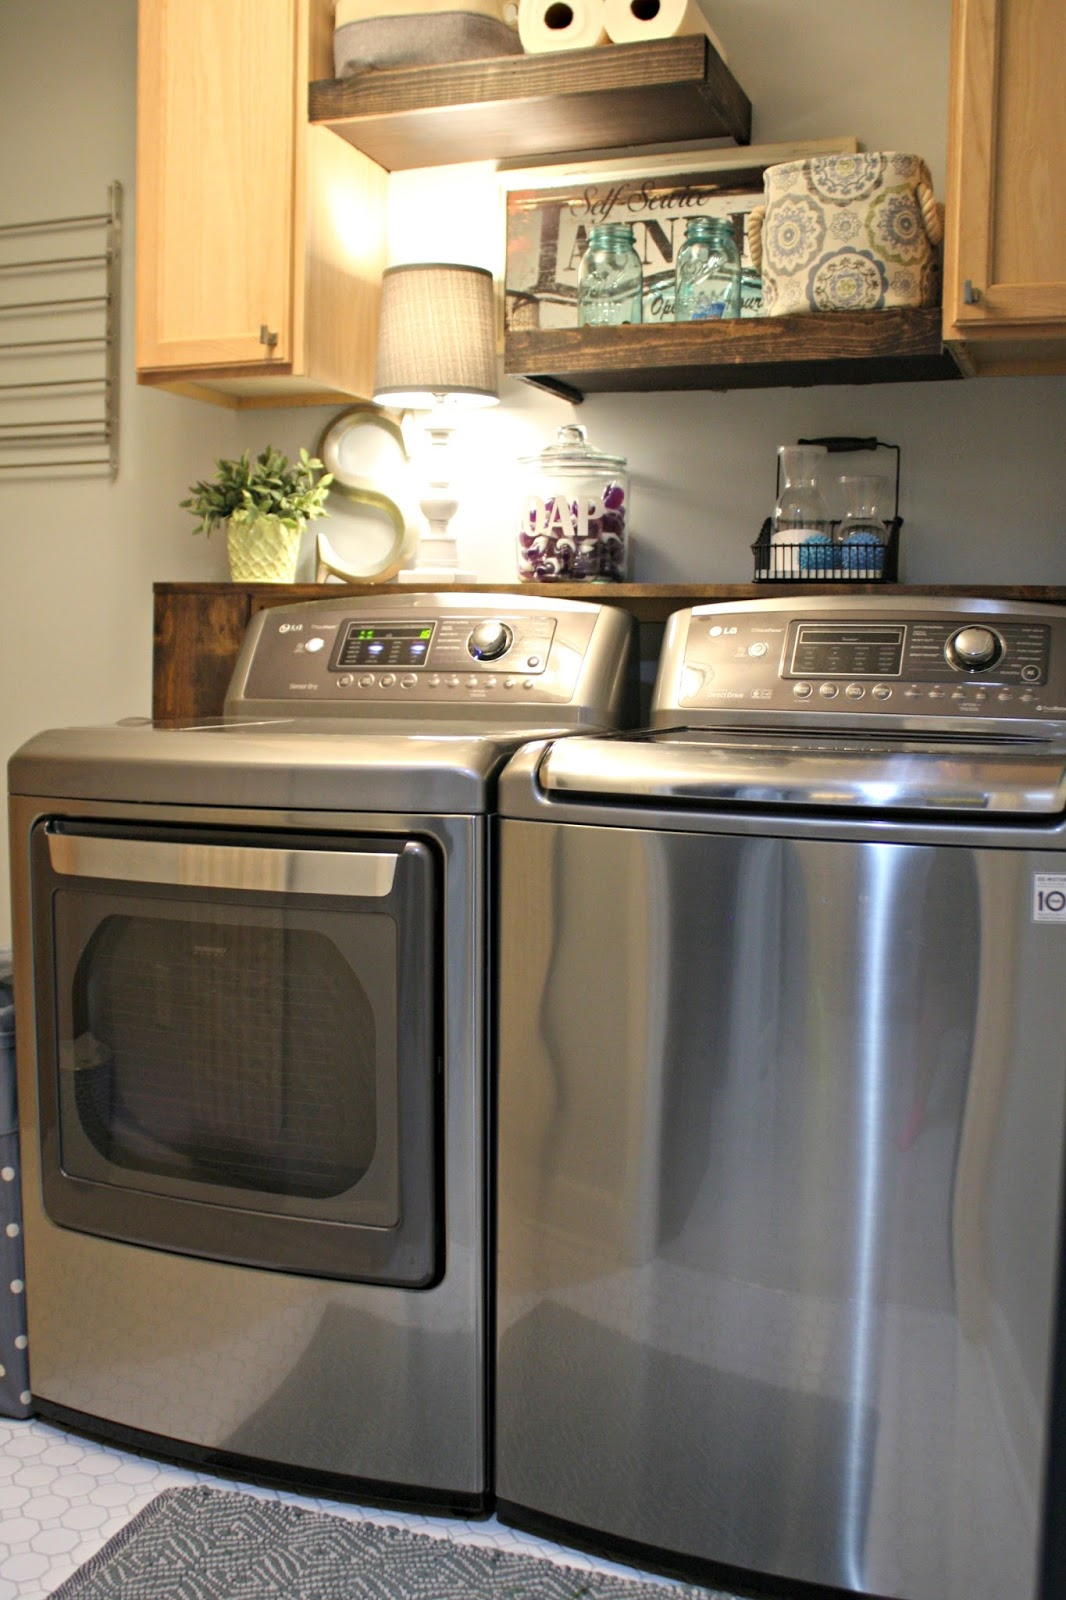 Lg washer and dryer review four years later from thrifty decor chick - Laundry room ideas small spaces collection ...